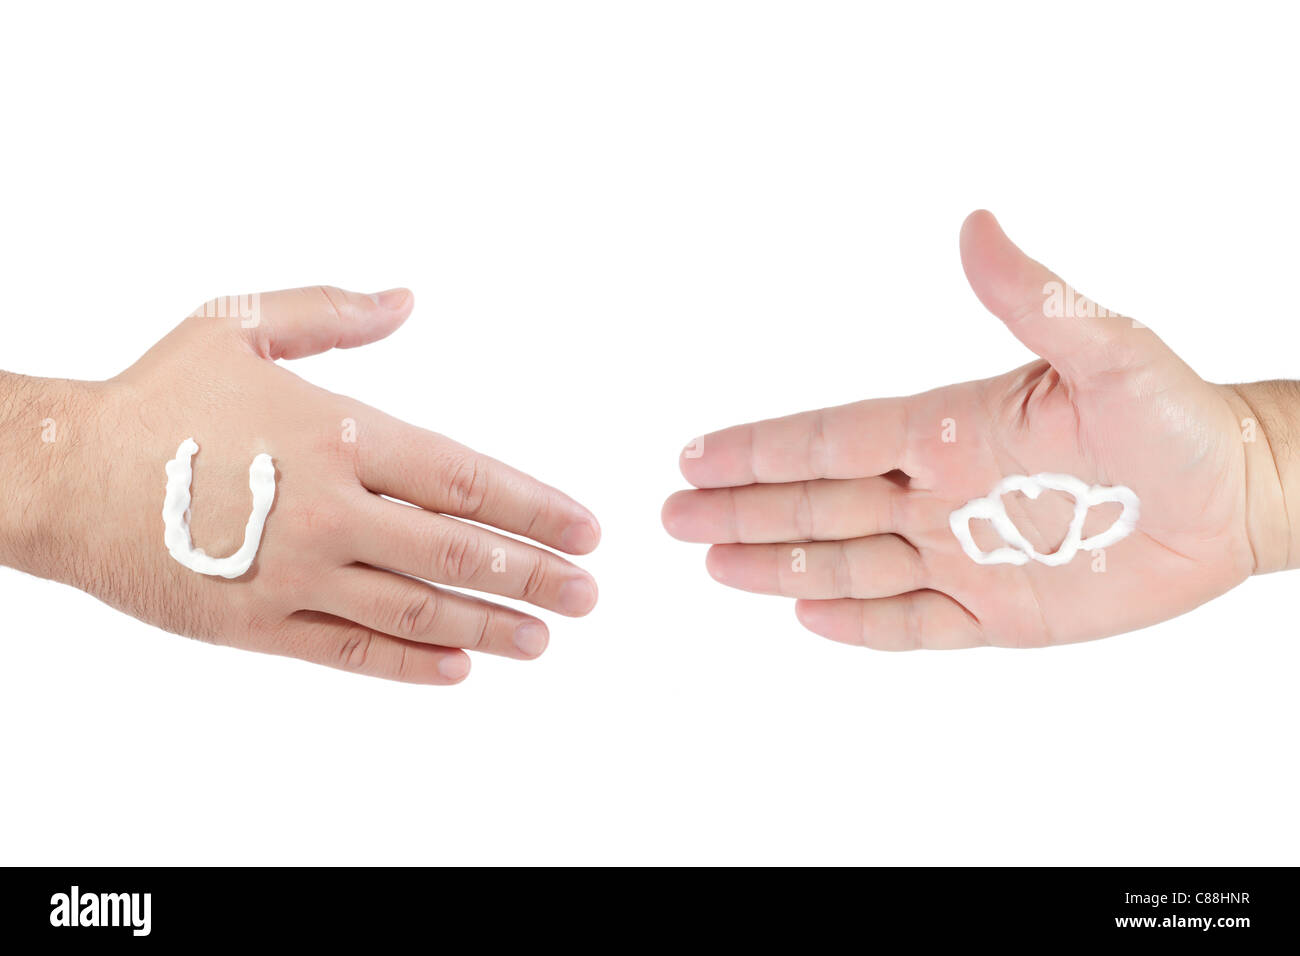 hands ready to handshake with a hand cream featuring logo of Unilever and Kalina  on white background Stock Photo